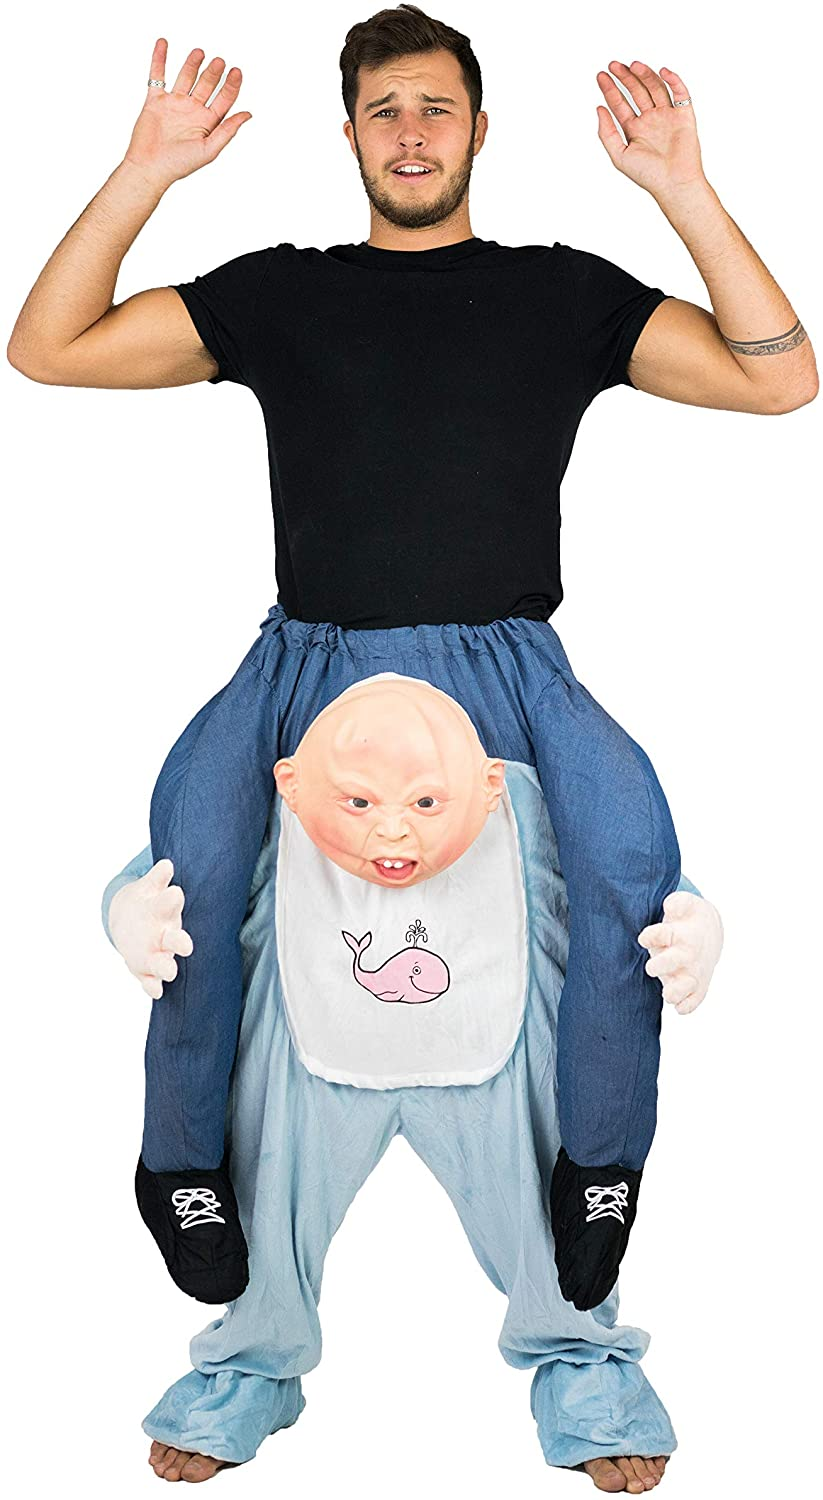 Bodysocks Adult Stuffed Carry On Baby Fancy Dress Costume - Rite Gadgets